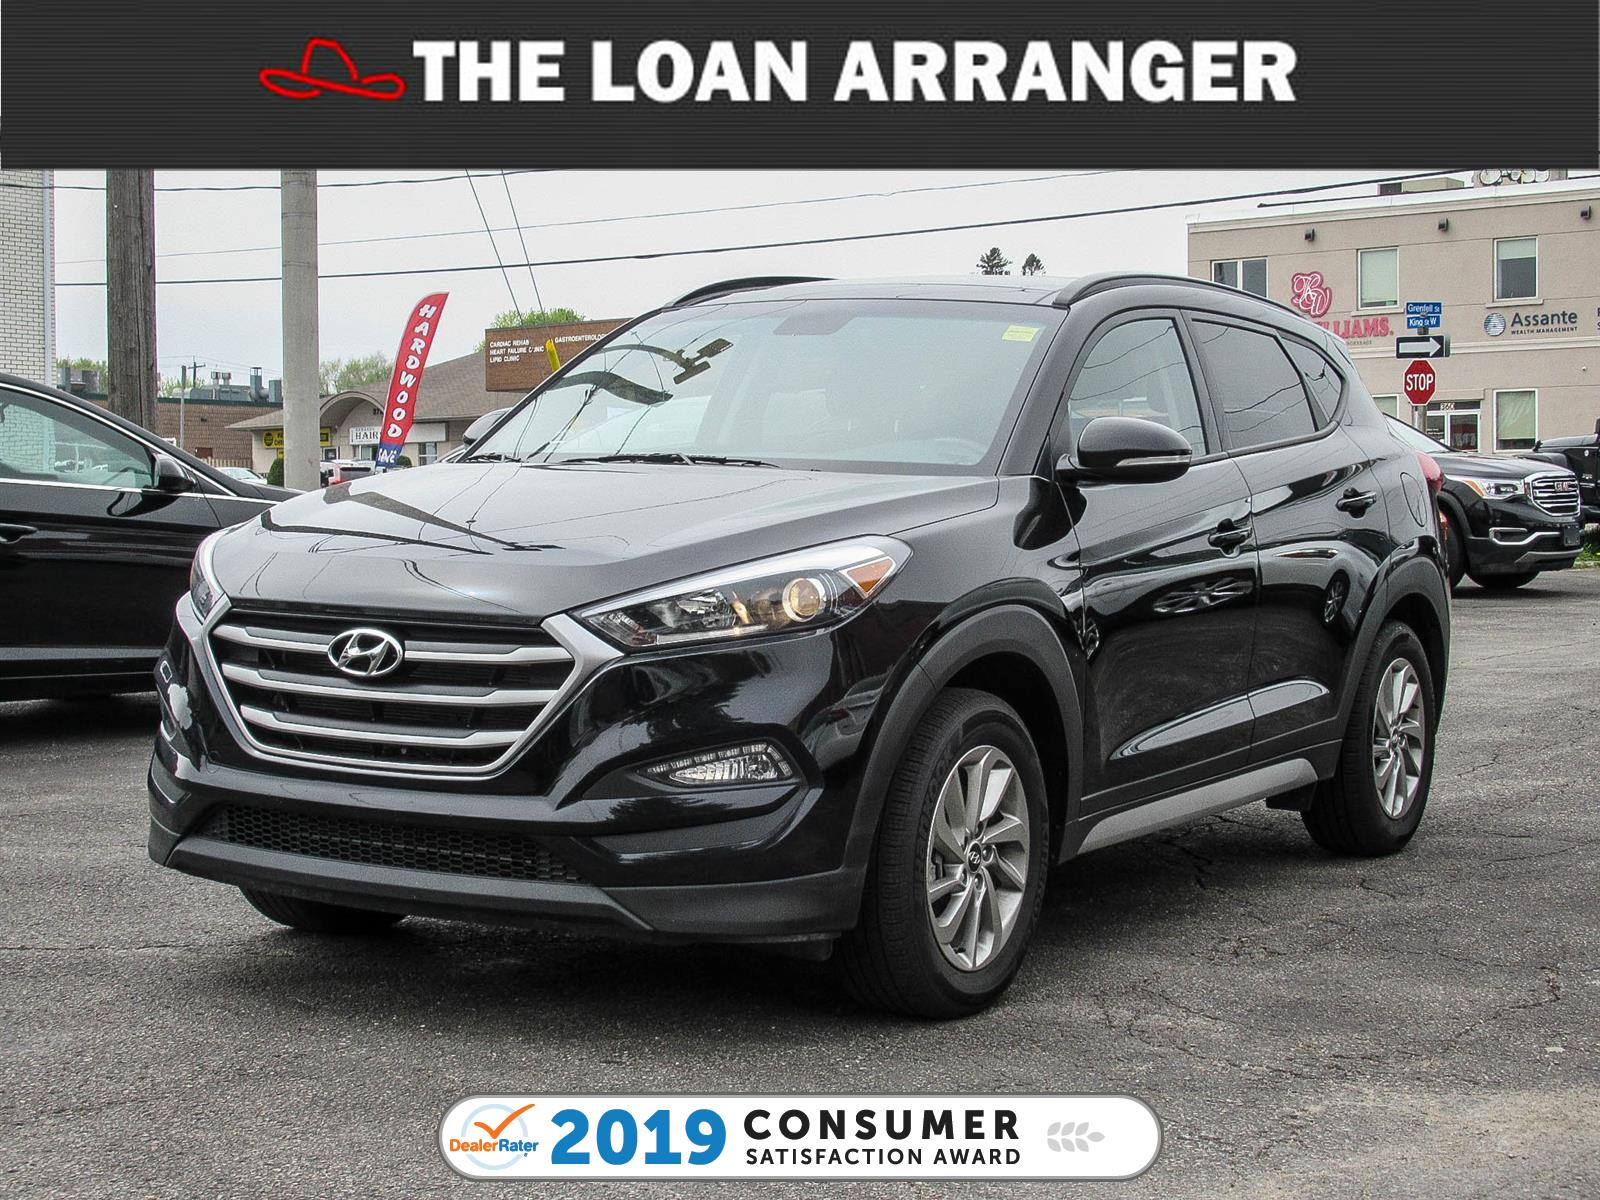 2018 Hyundai Tucson The Loan Arranger Toronto